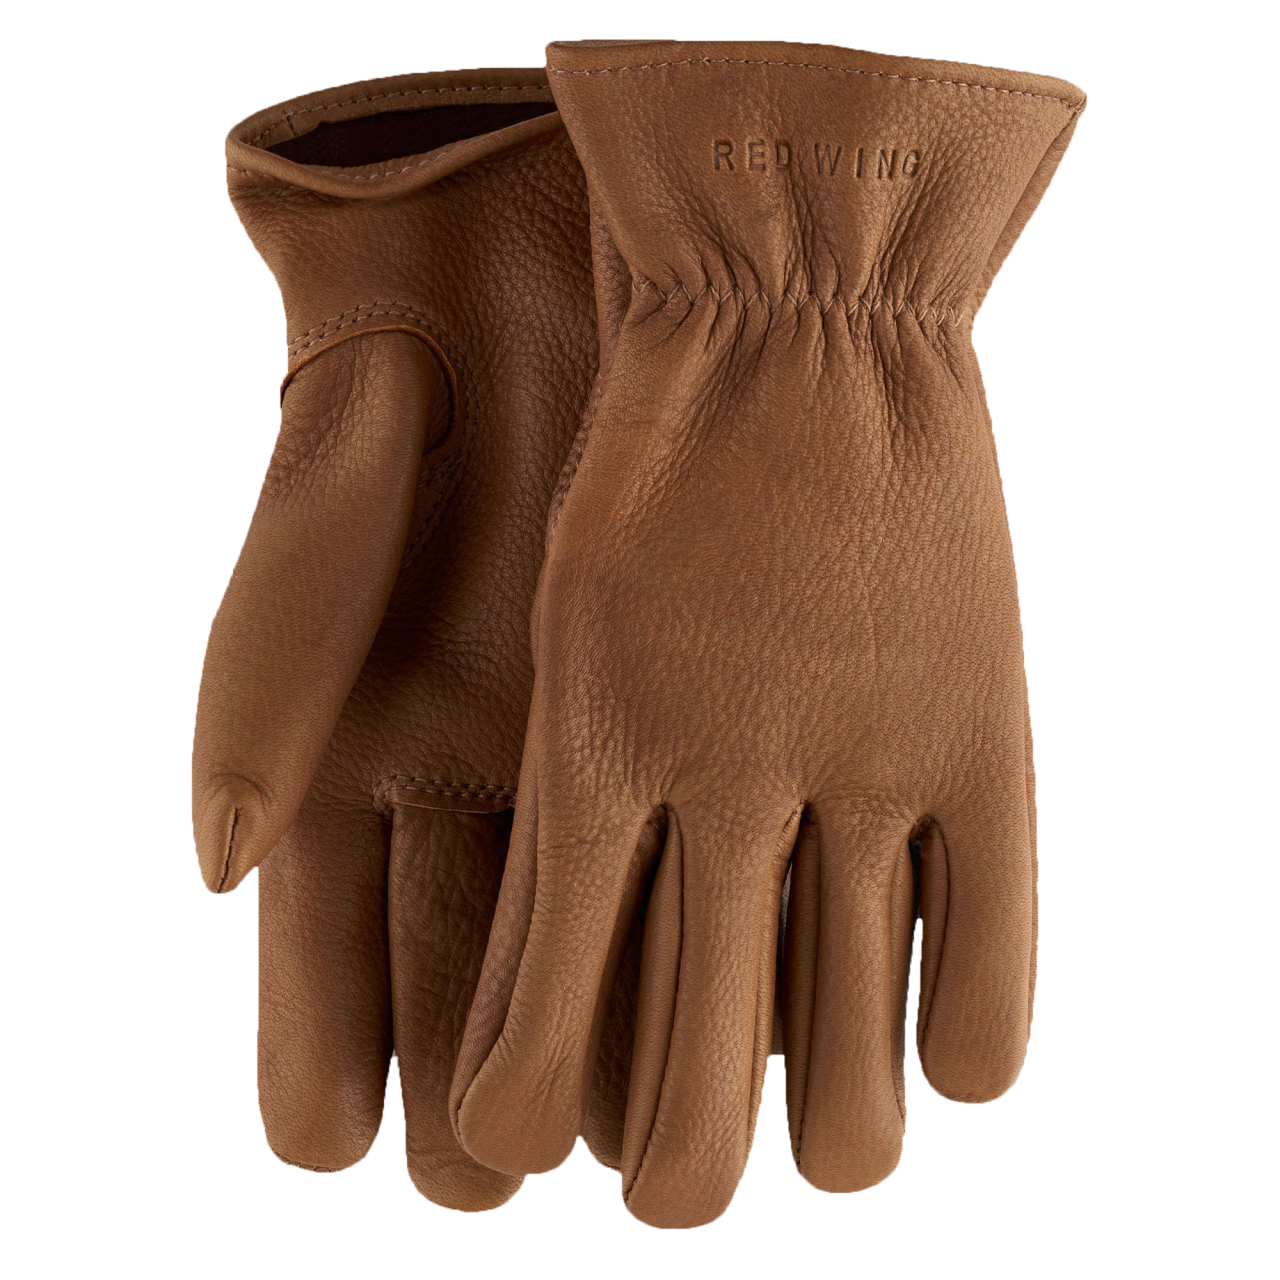 Red Wing 95234 Glove - Buckskin Unlined